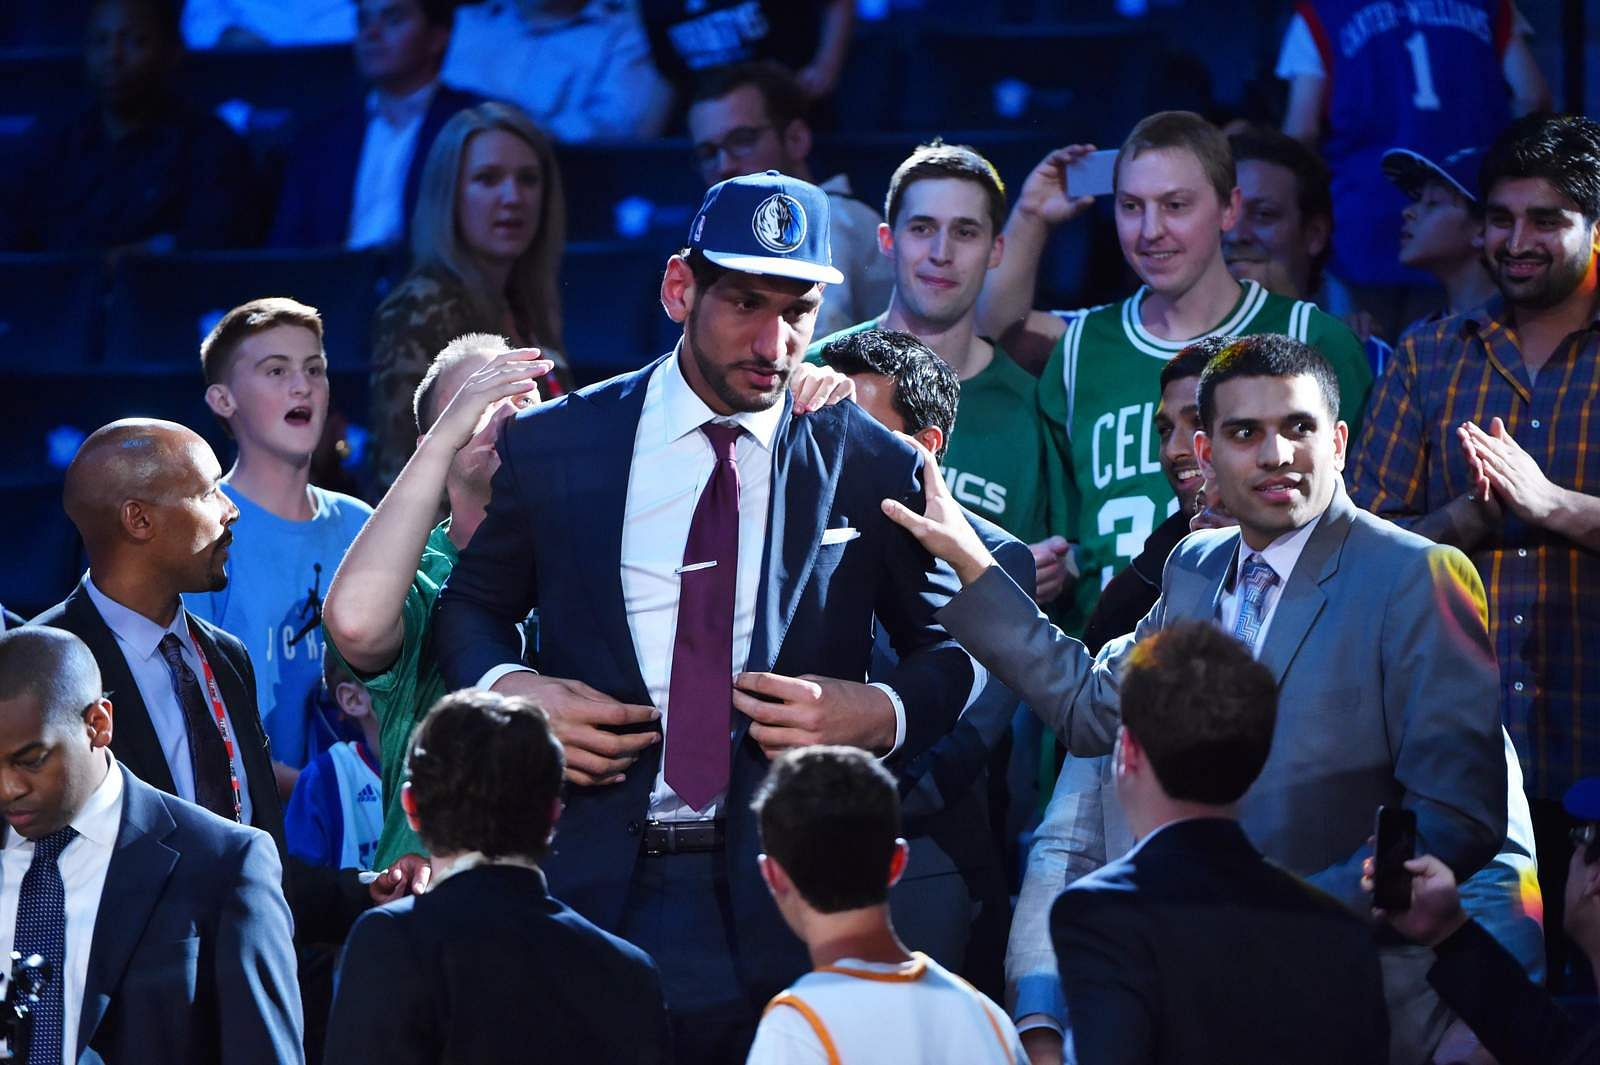 BROOKLYN, NY - JUNE 25:  Satnam Singh the 52nd pick overall in the NBA Draft by the Dallas Mavericks during the 2015 NBA Draft at the Barclays Center on June 25, 2015 in the Brooklyn borough of New York City. NOTE TO USER: User expressly acknowledges and agrees that, by downloading and/or using this photograph, user is consenting to the terms and conditions of the Getty Images License Agreement.  Mandatory Copyright Notice: Copyright 2015 NBAE (Photo by Jesse D. Garrabrant/NBAE via Getty Images)